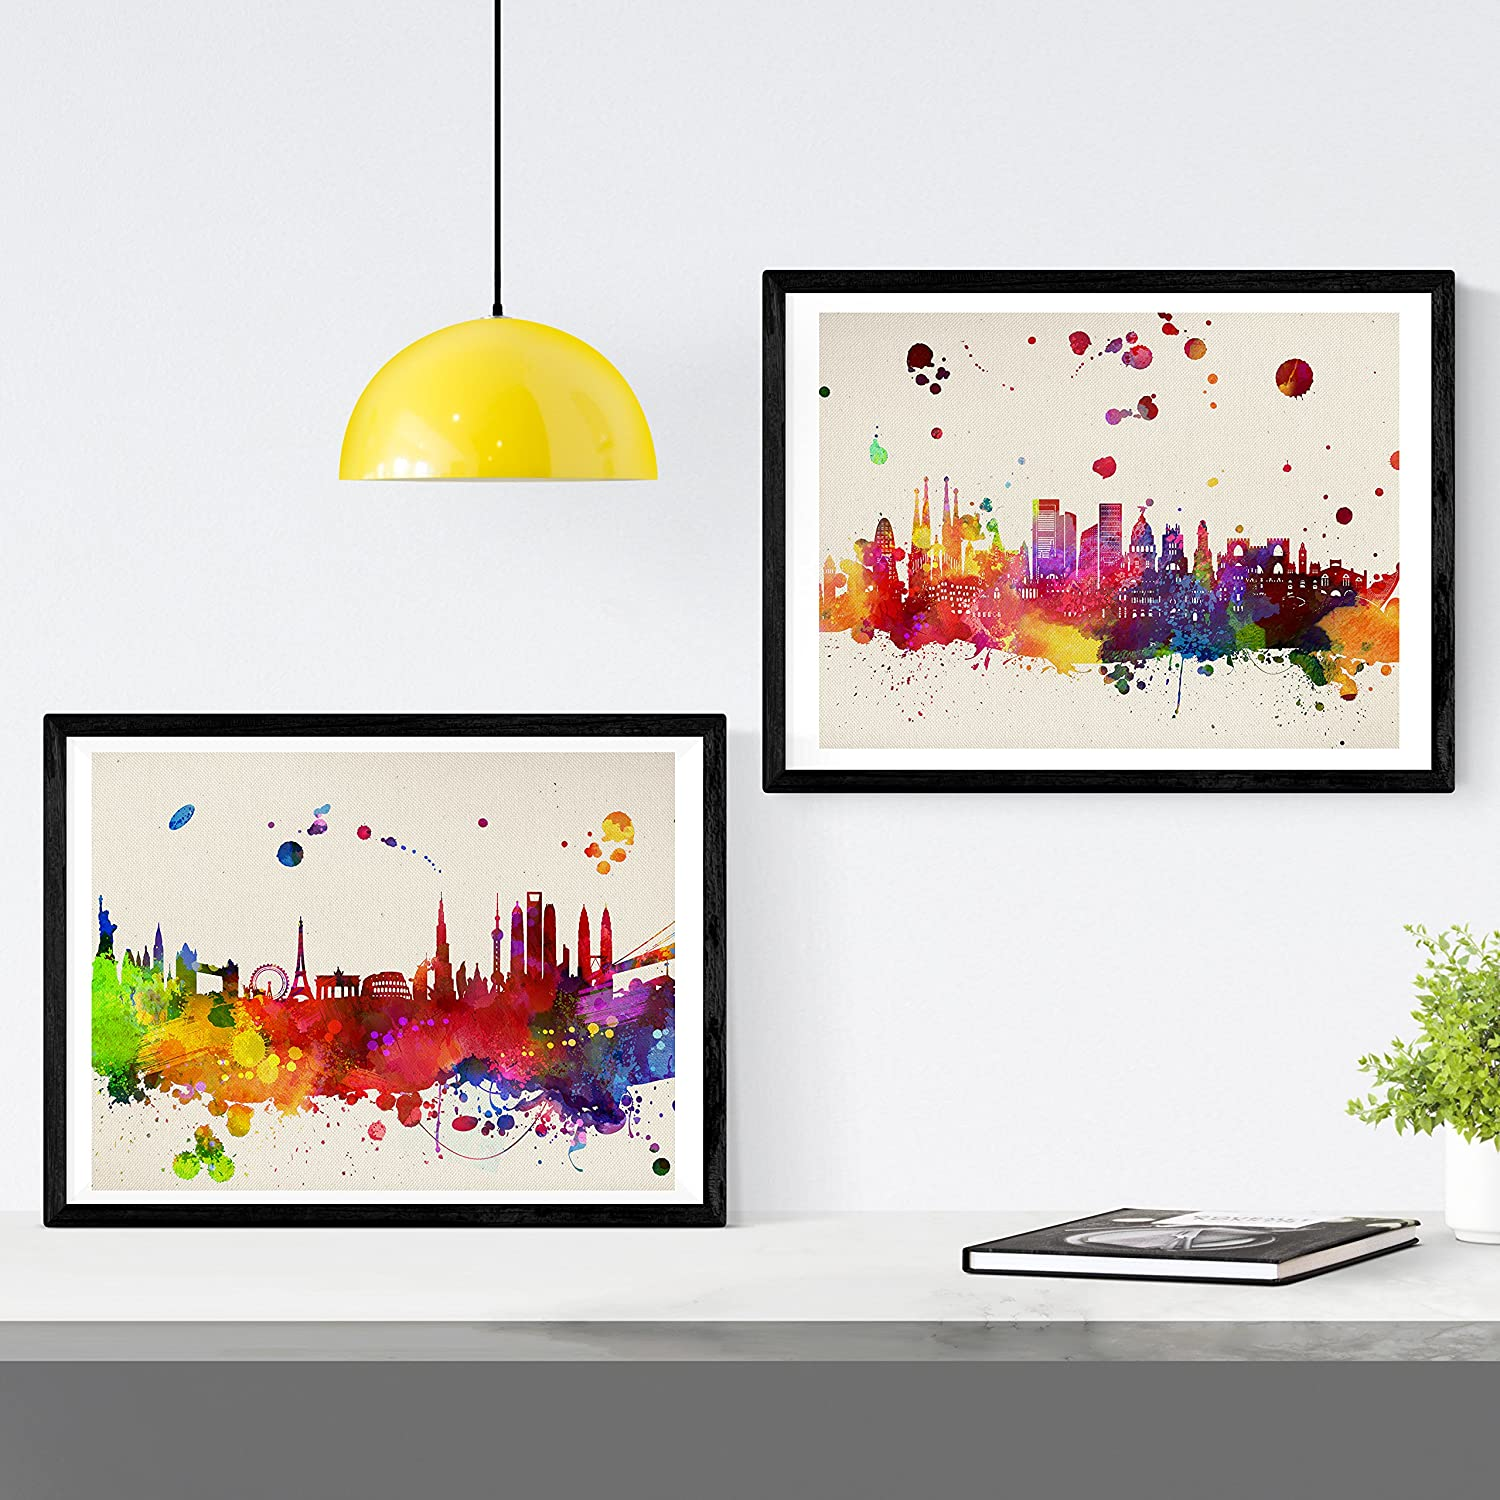 Nacnic Prints Monuments of Spain - Set of 1 - Unframed 11x17 inch Size - 250g Paper - Beautiful Poster Painting for Home Office Living Room